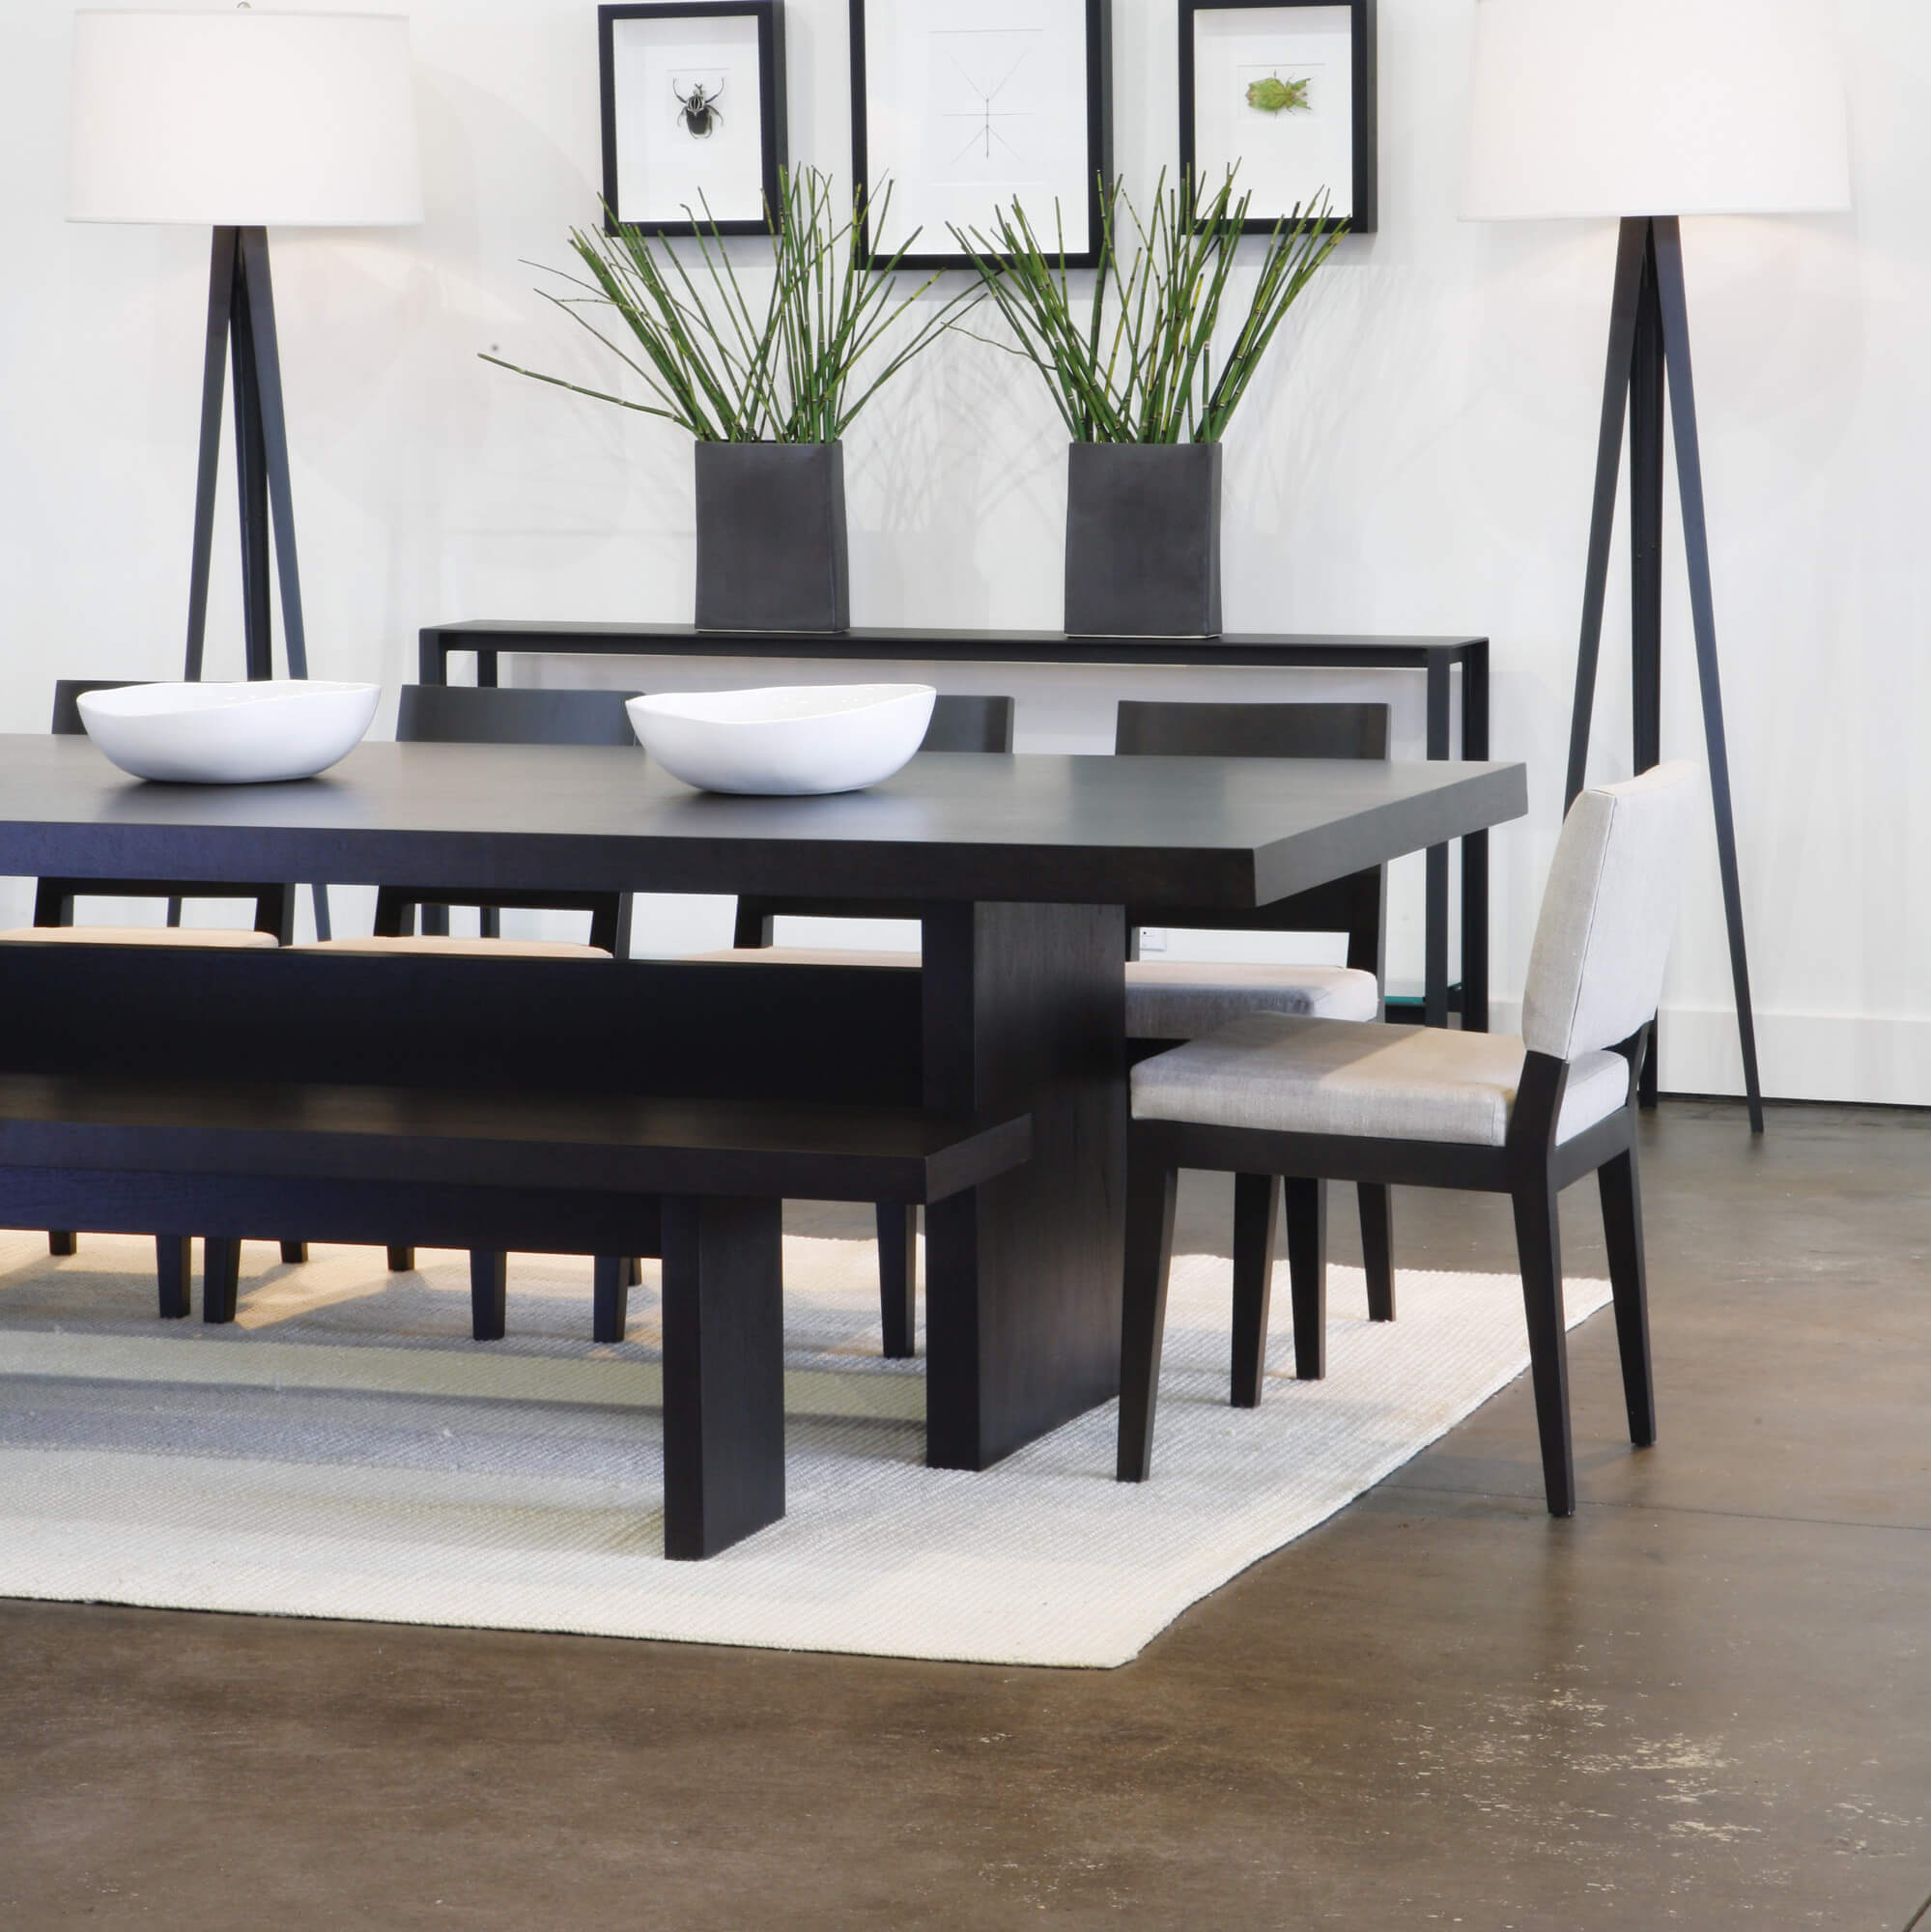 5 Piece Modern Dining Room Set With Bench This Is A Great Furniture